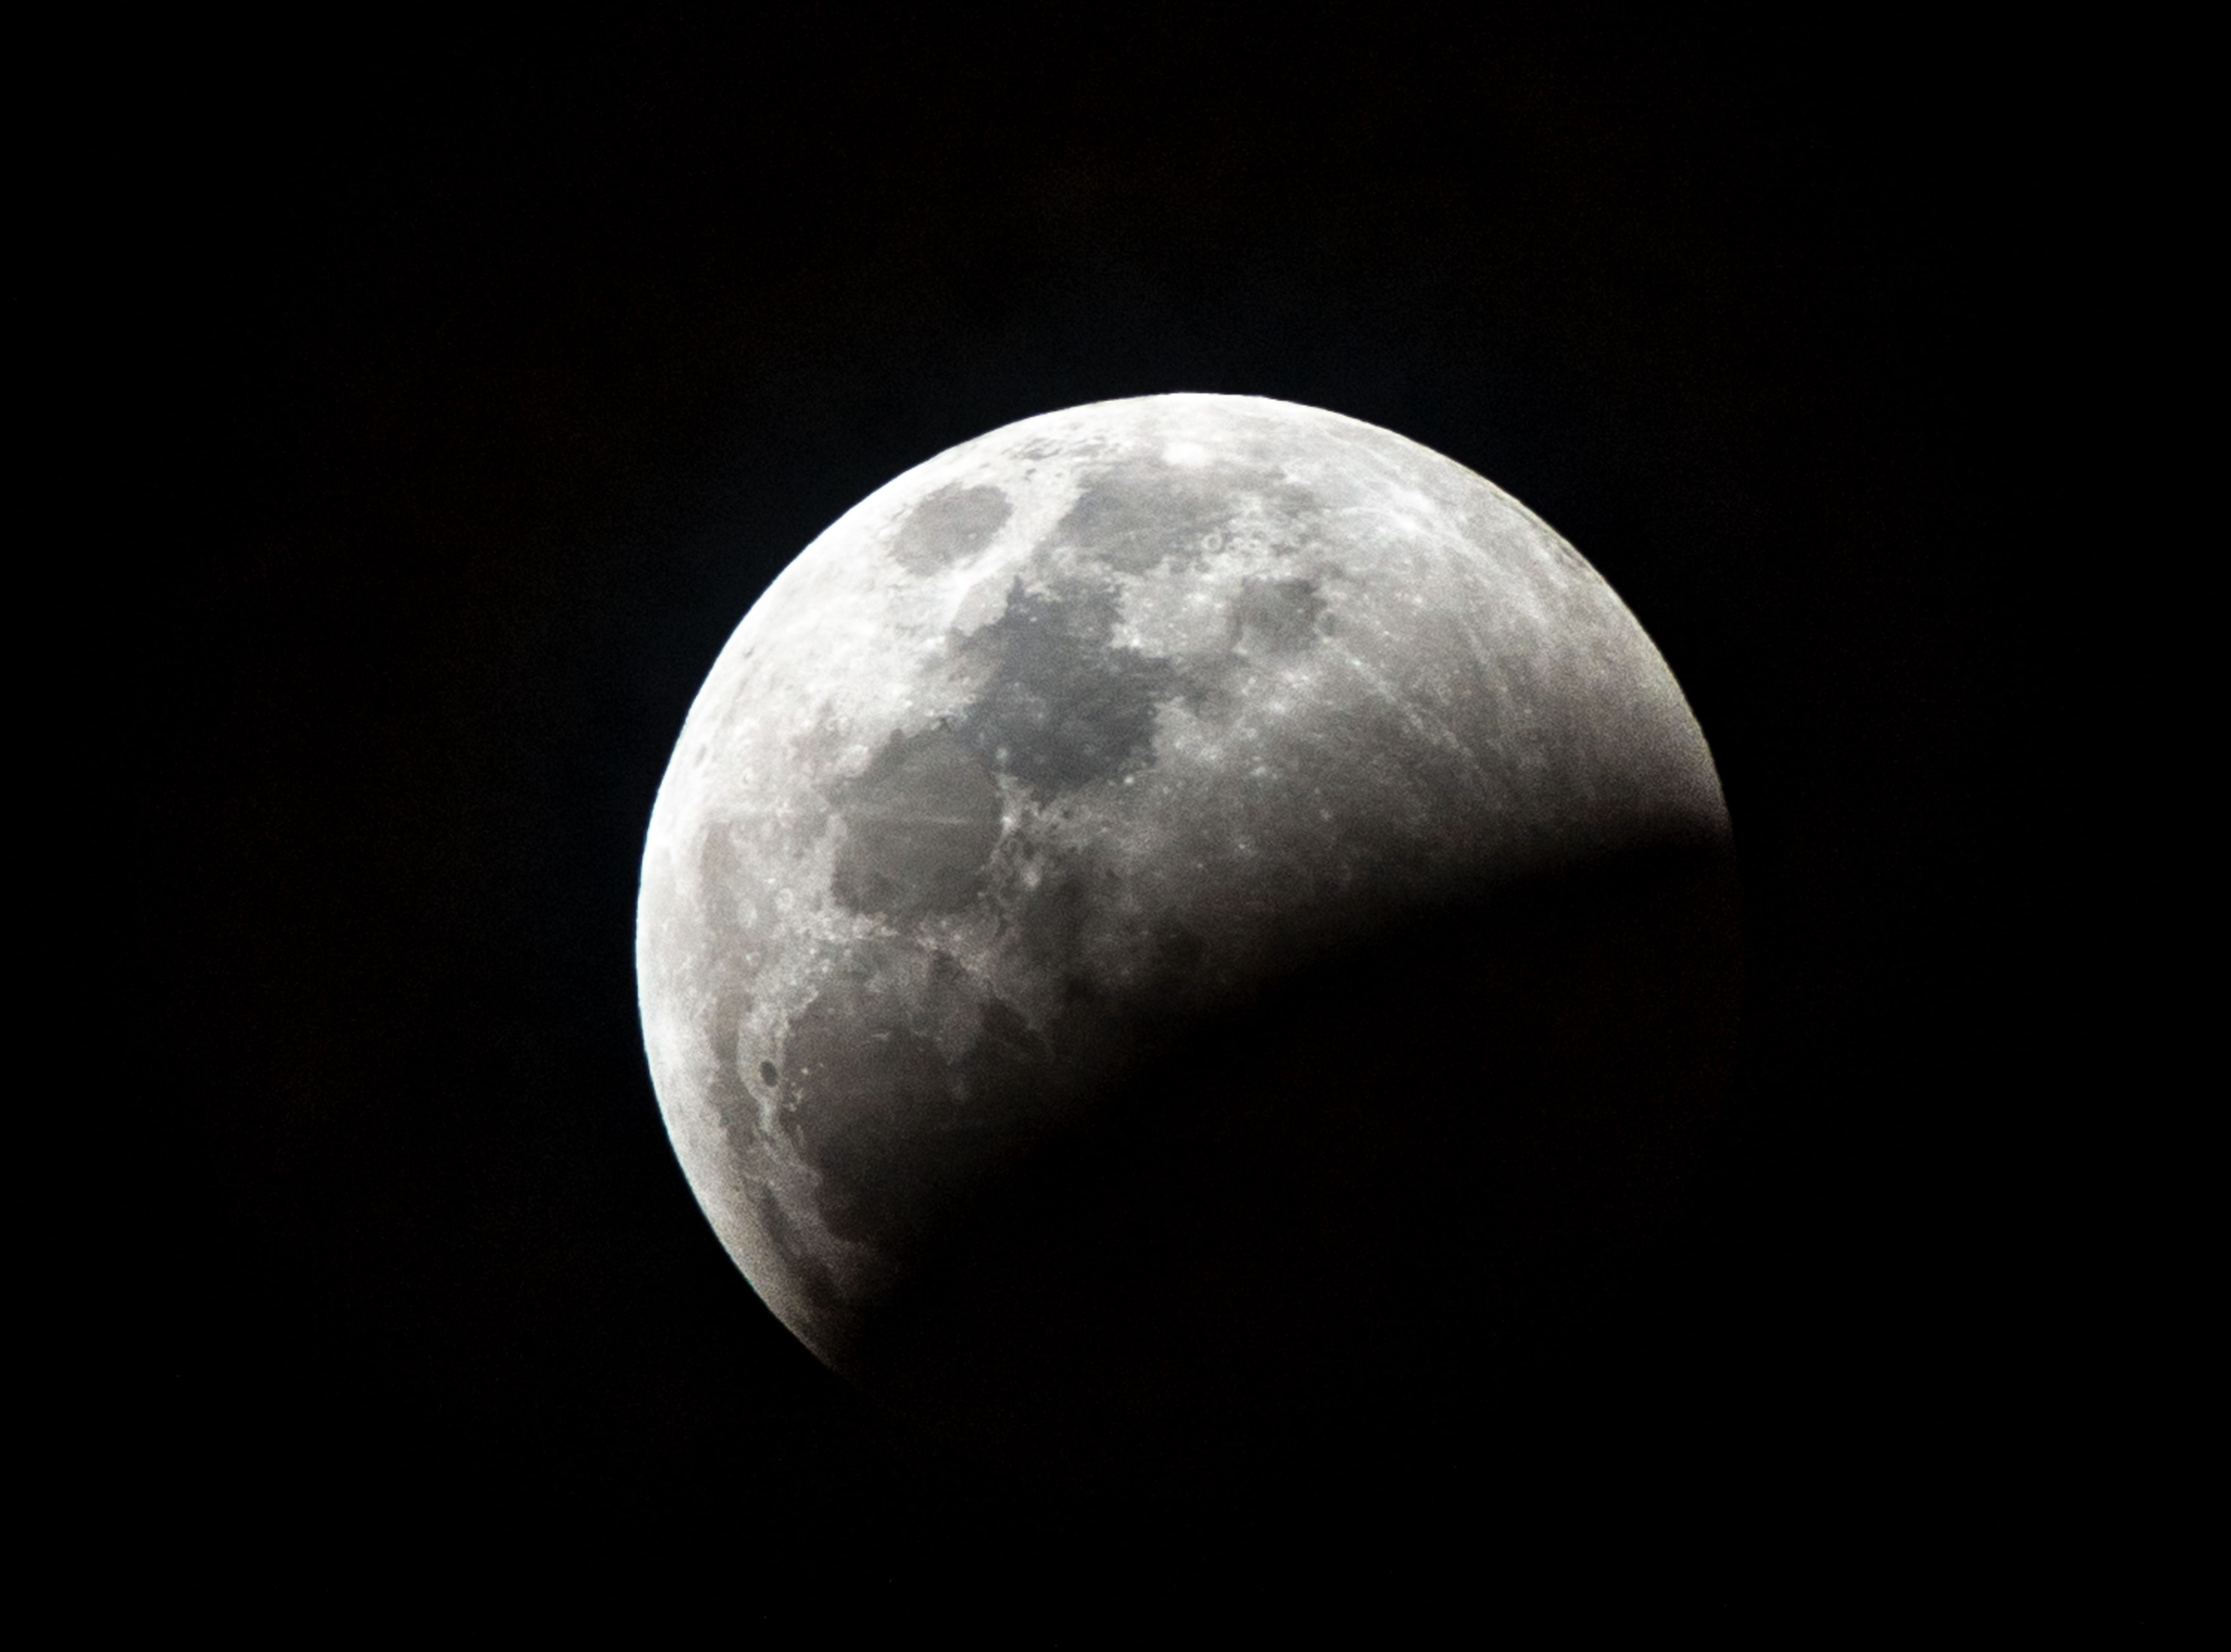 The so-called Super Blood Wolf Moon rises as a total lunar eclipse begins on Sunday January 20, 2019, in Miami, Florida. - The January 21 total lunar eclipse will be the last one until May 2021, and the last one visible from the United States until 2022. (Photo by Gaston De Cardenas / AFP)GASTON DE CARDENAS/AFP/Getty Images